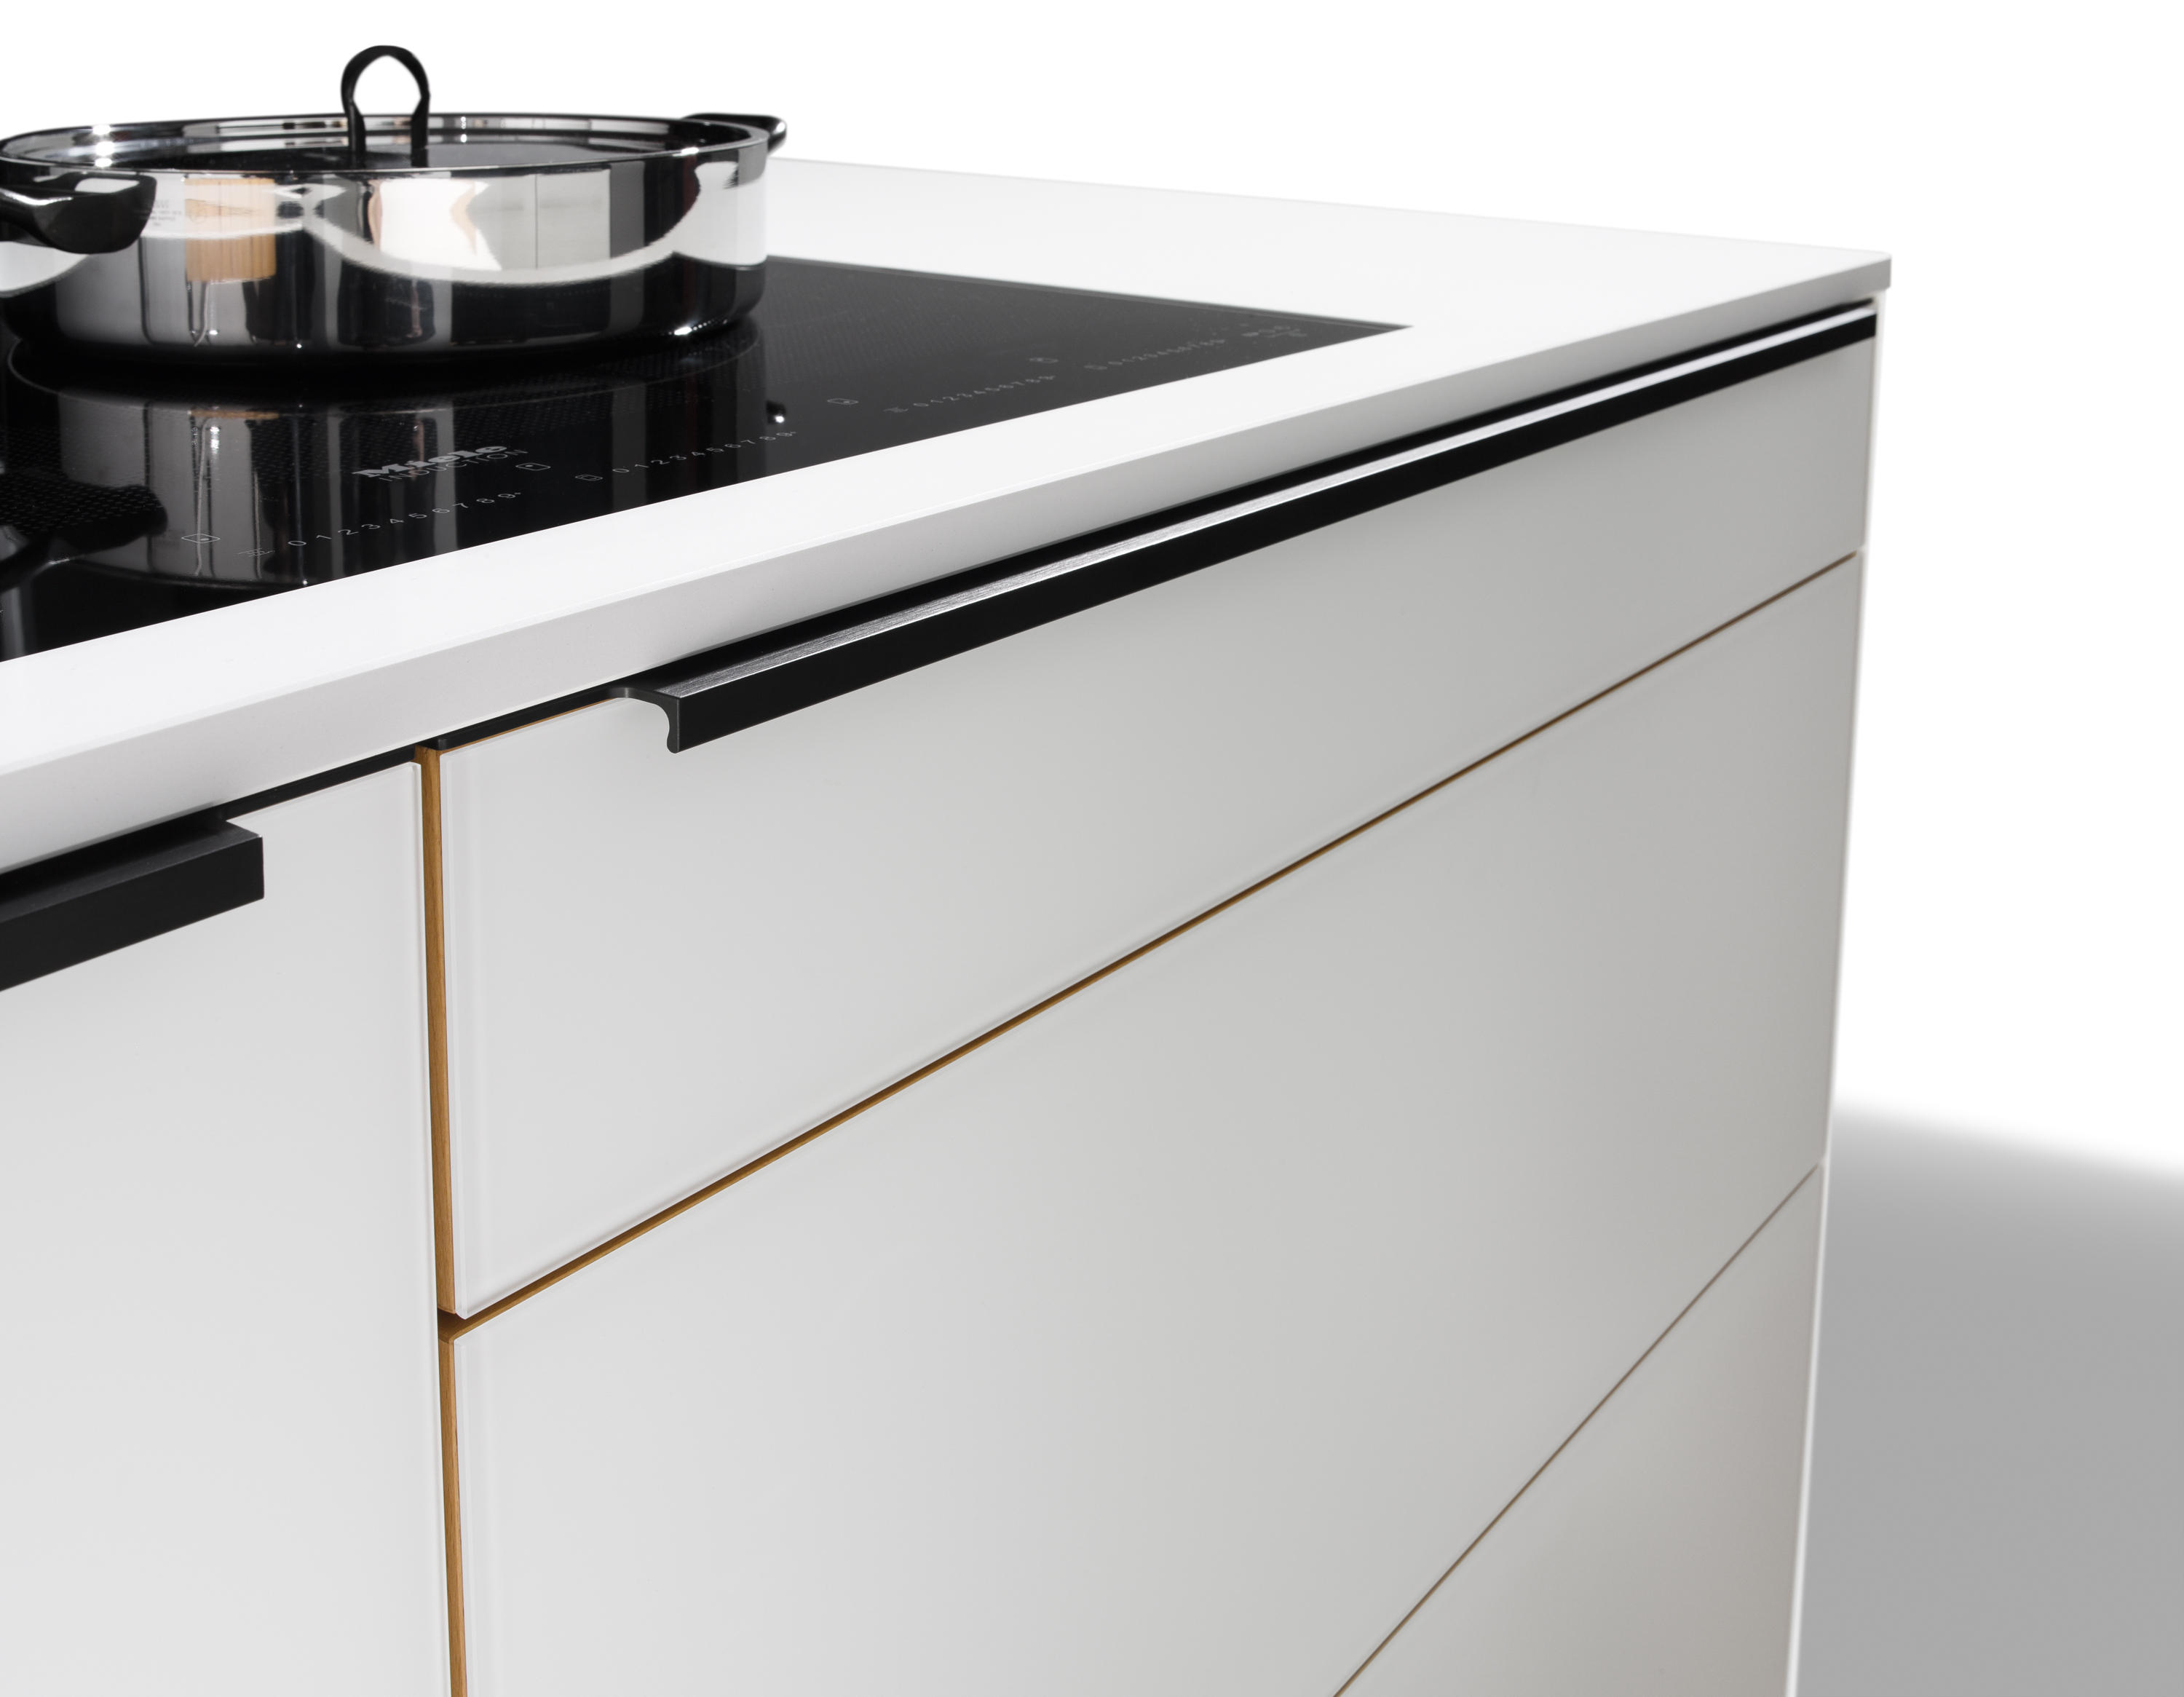 Linee Kitchen Fitted Kitchens From Team 7 Architonic # Muebles Rinnova